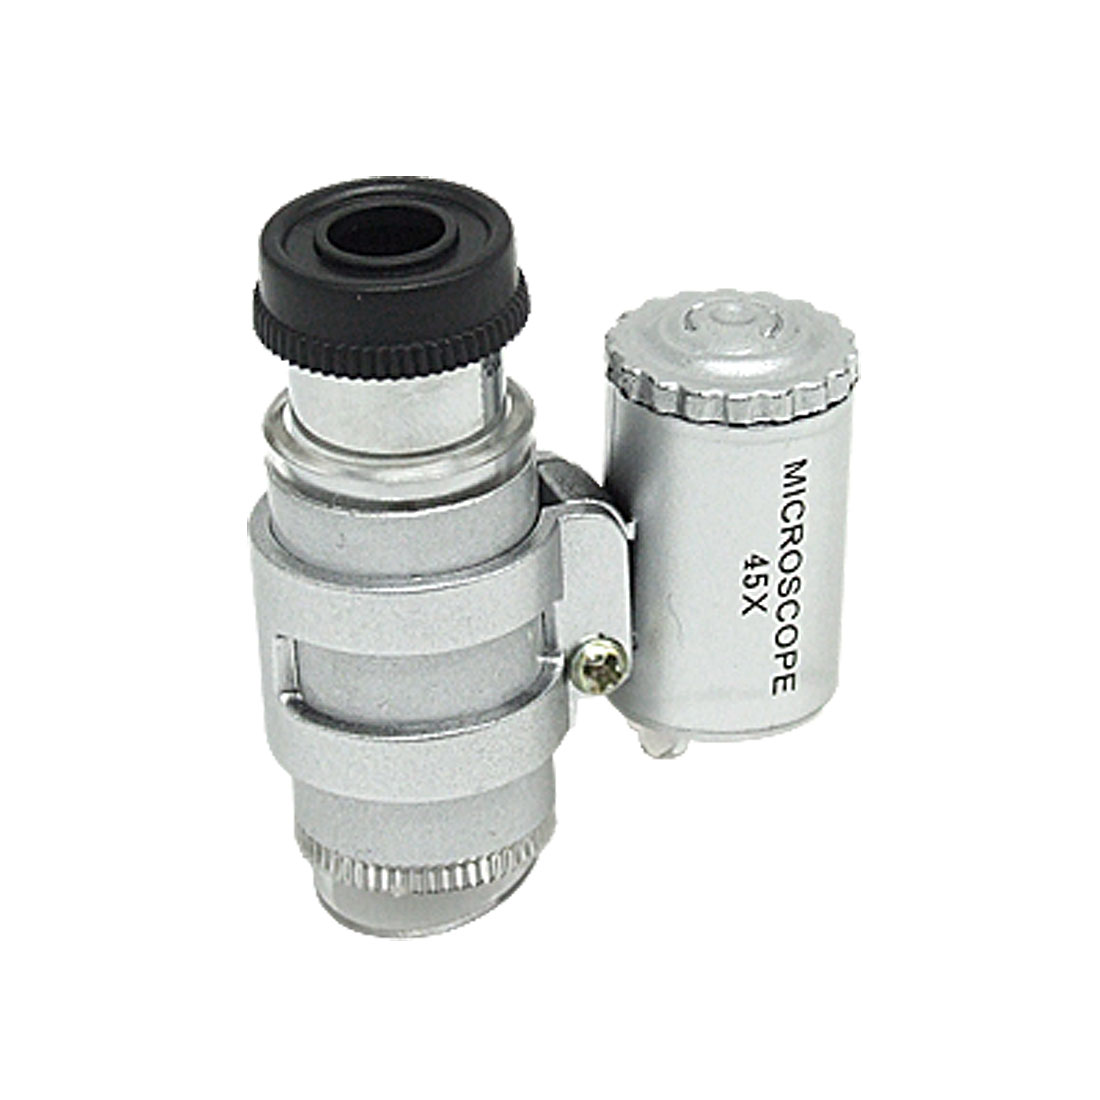 Unique Bargains Smallest Microscope Loupe Magnifying 45X  Light Zhvwe